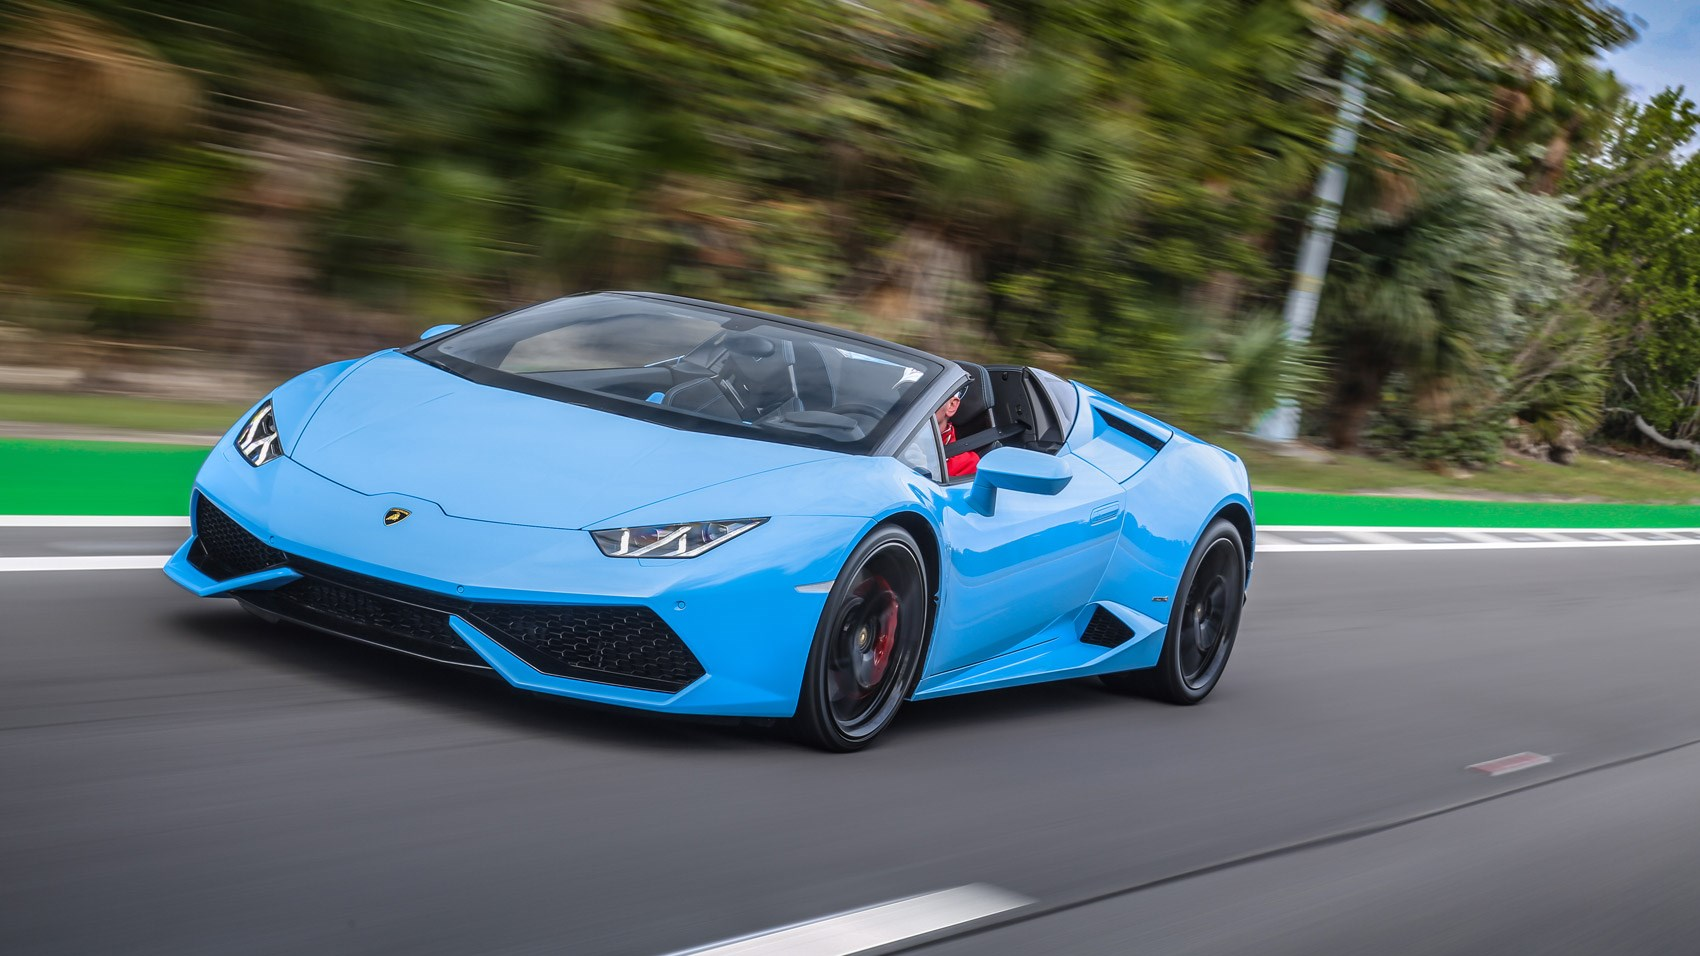 lamborghini huracan lp610 4 spyder 2016 review by car magazine. Black Bedroom Furniture Sets. Home Design Ideas